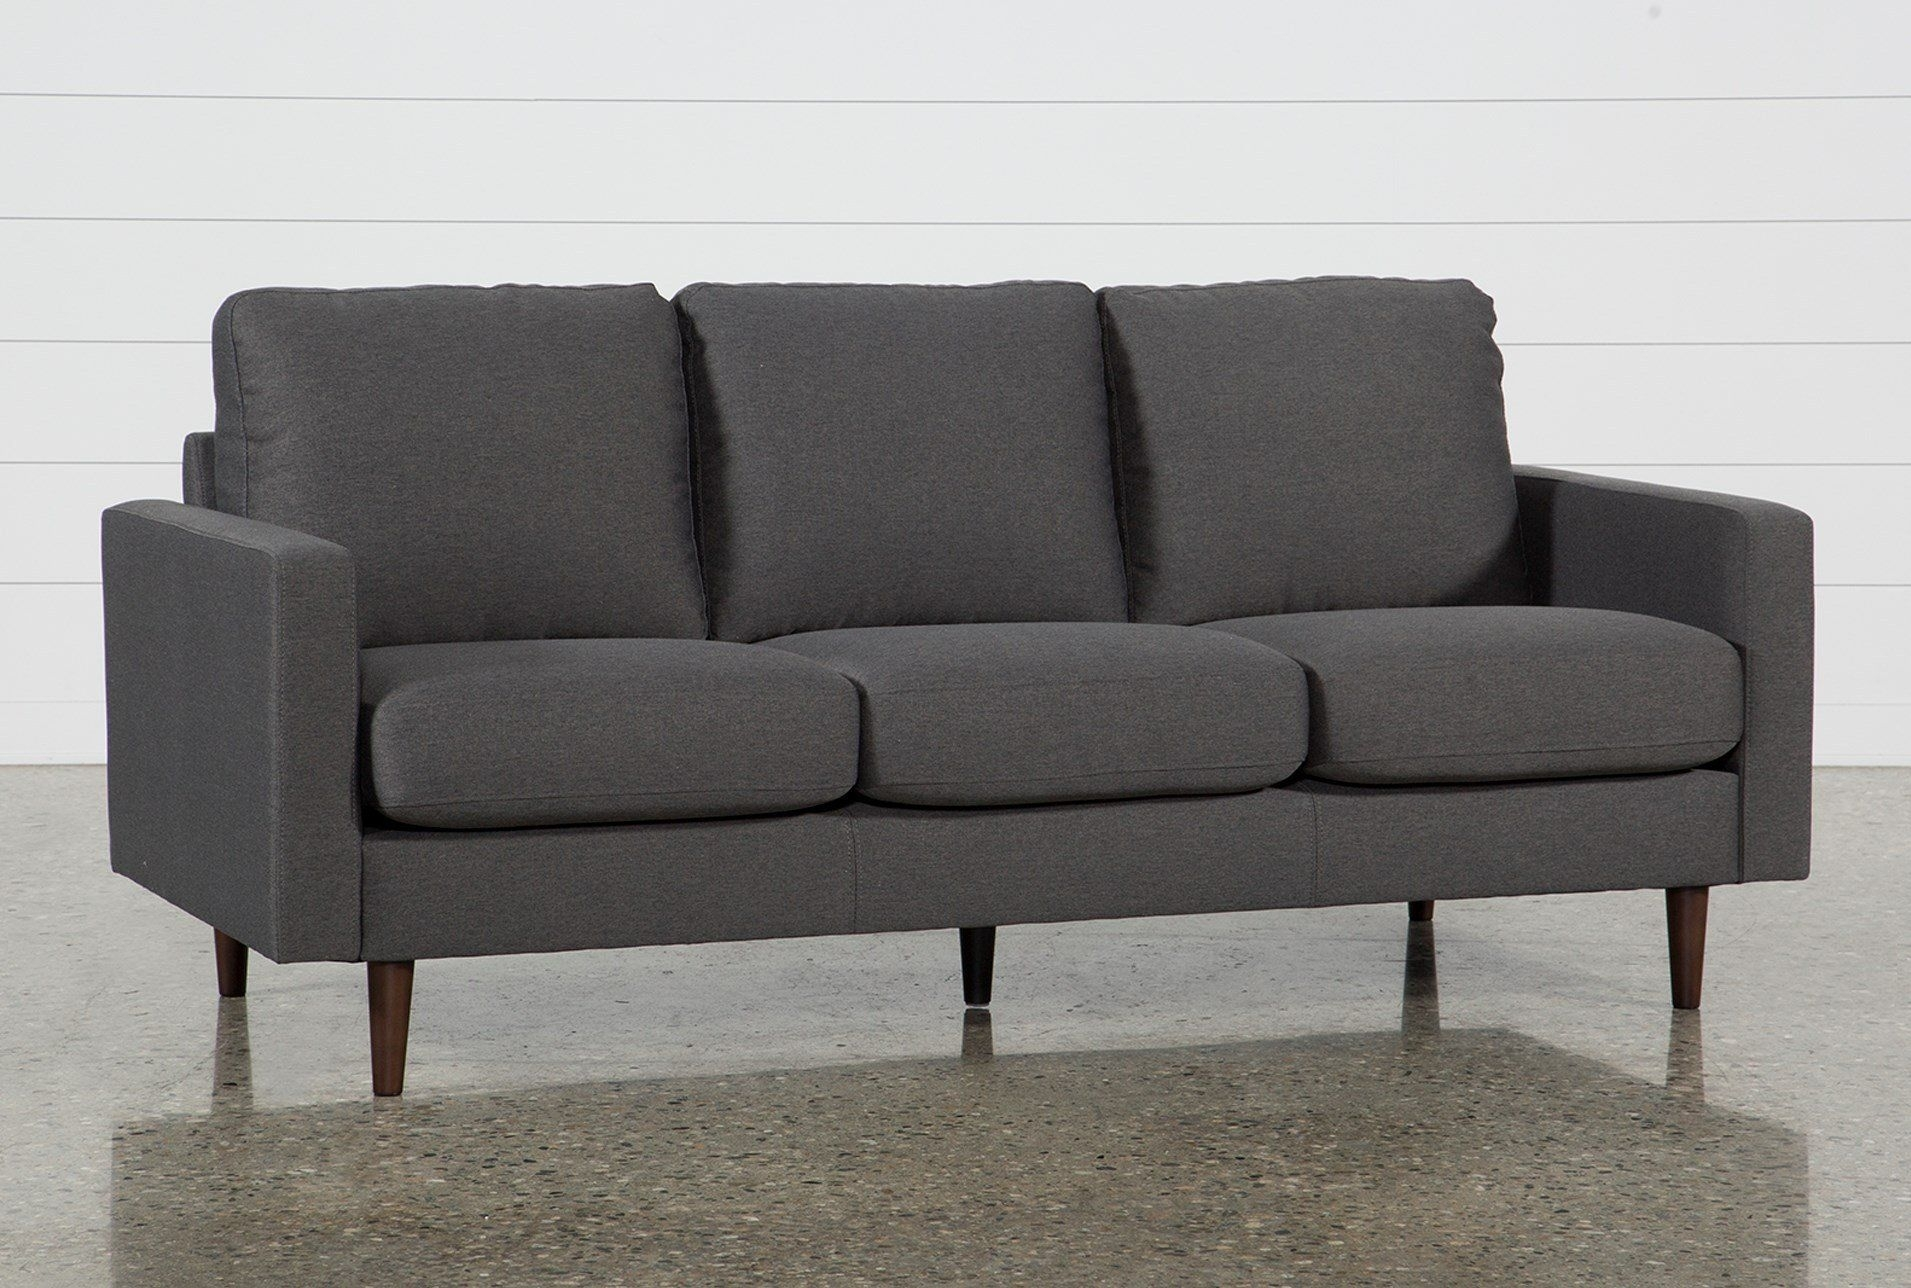 David Dark Grey Queen Sleeper | Modern Industrial | Pinterest | Dark Pertaining To Arrowmask 2 Piece Sectionals With Sleeper & Left Facing Chaise (Image 7 of 25)